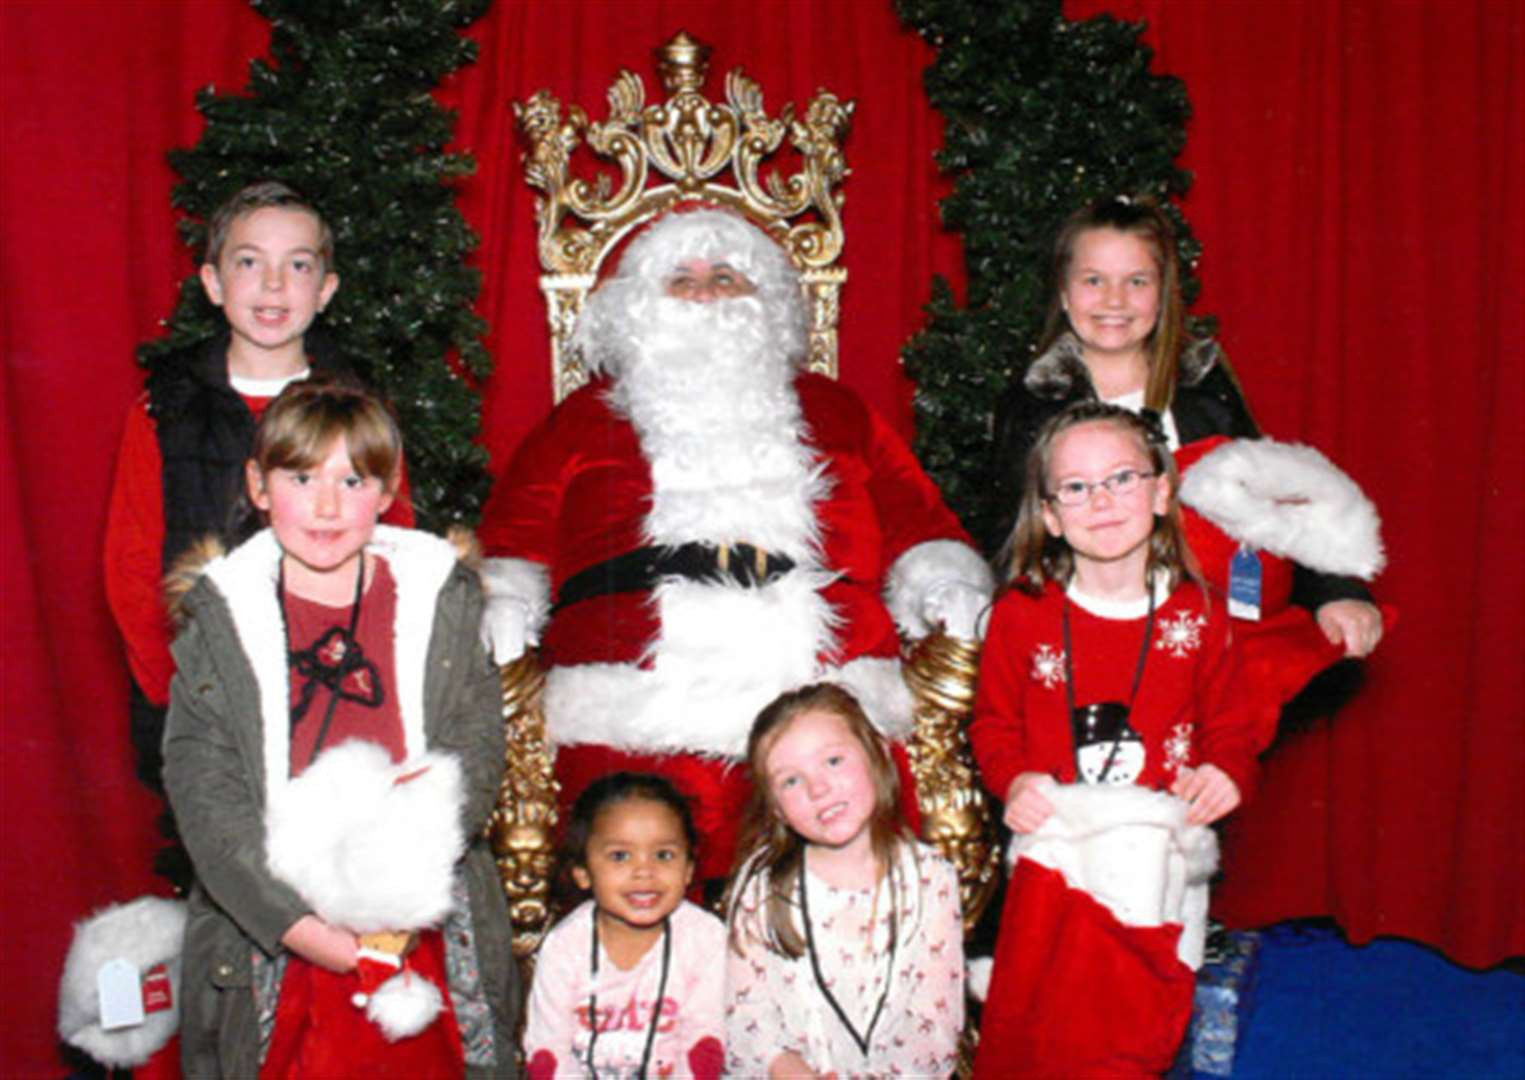 Youngsters with big smiles meet Santa Claus at Downtown, Grantham